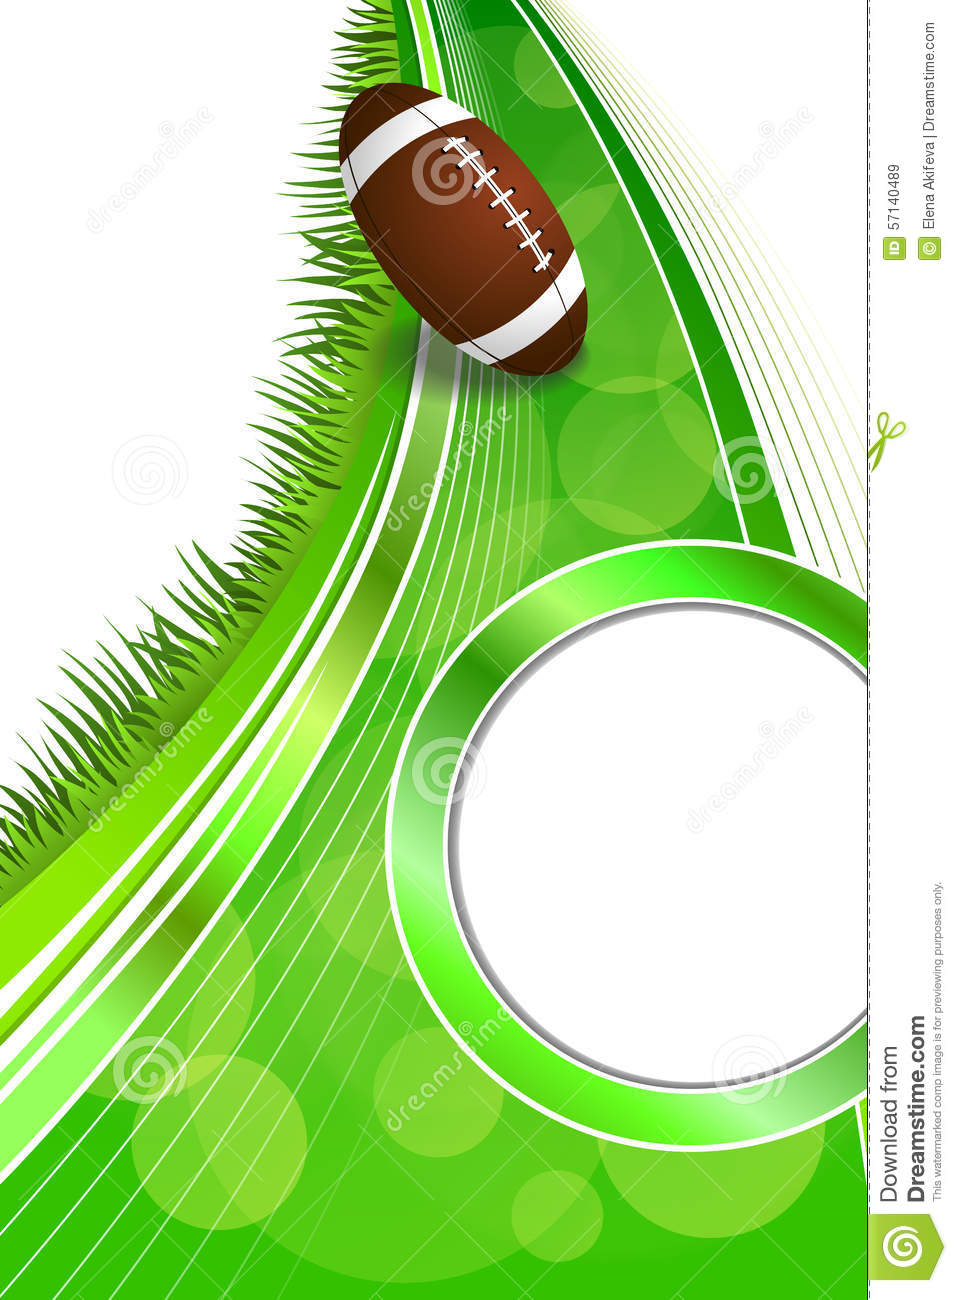 Stock Illustration Background Abstract Green Grass American Football Rugby Ball Gold Circle Vertical Frame Illustration Vector Image57140489 on Gold Circle Frame